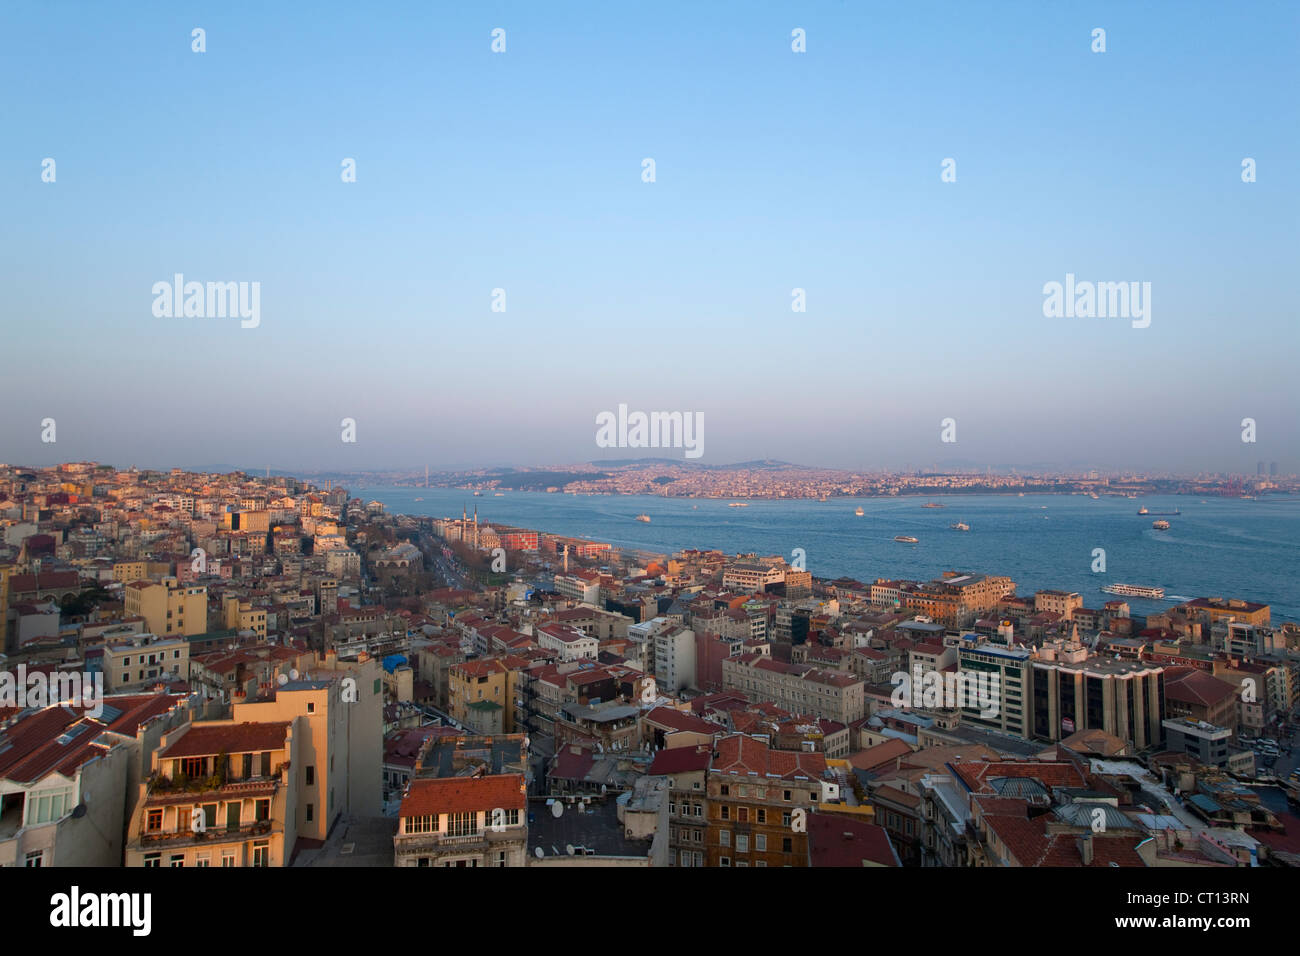 Aerial view of Istanbul - Stock Image